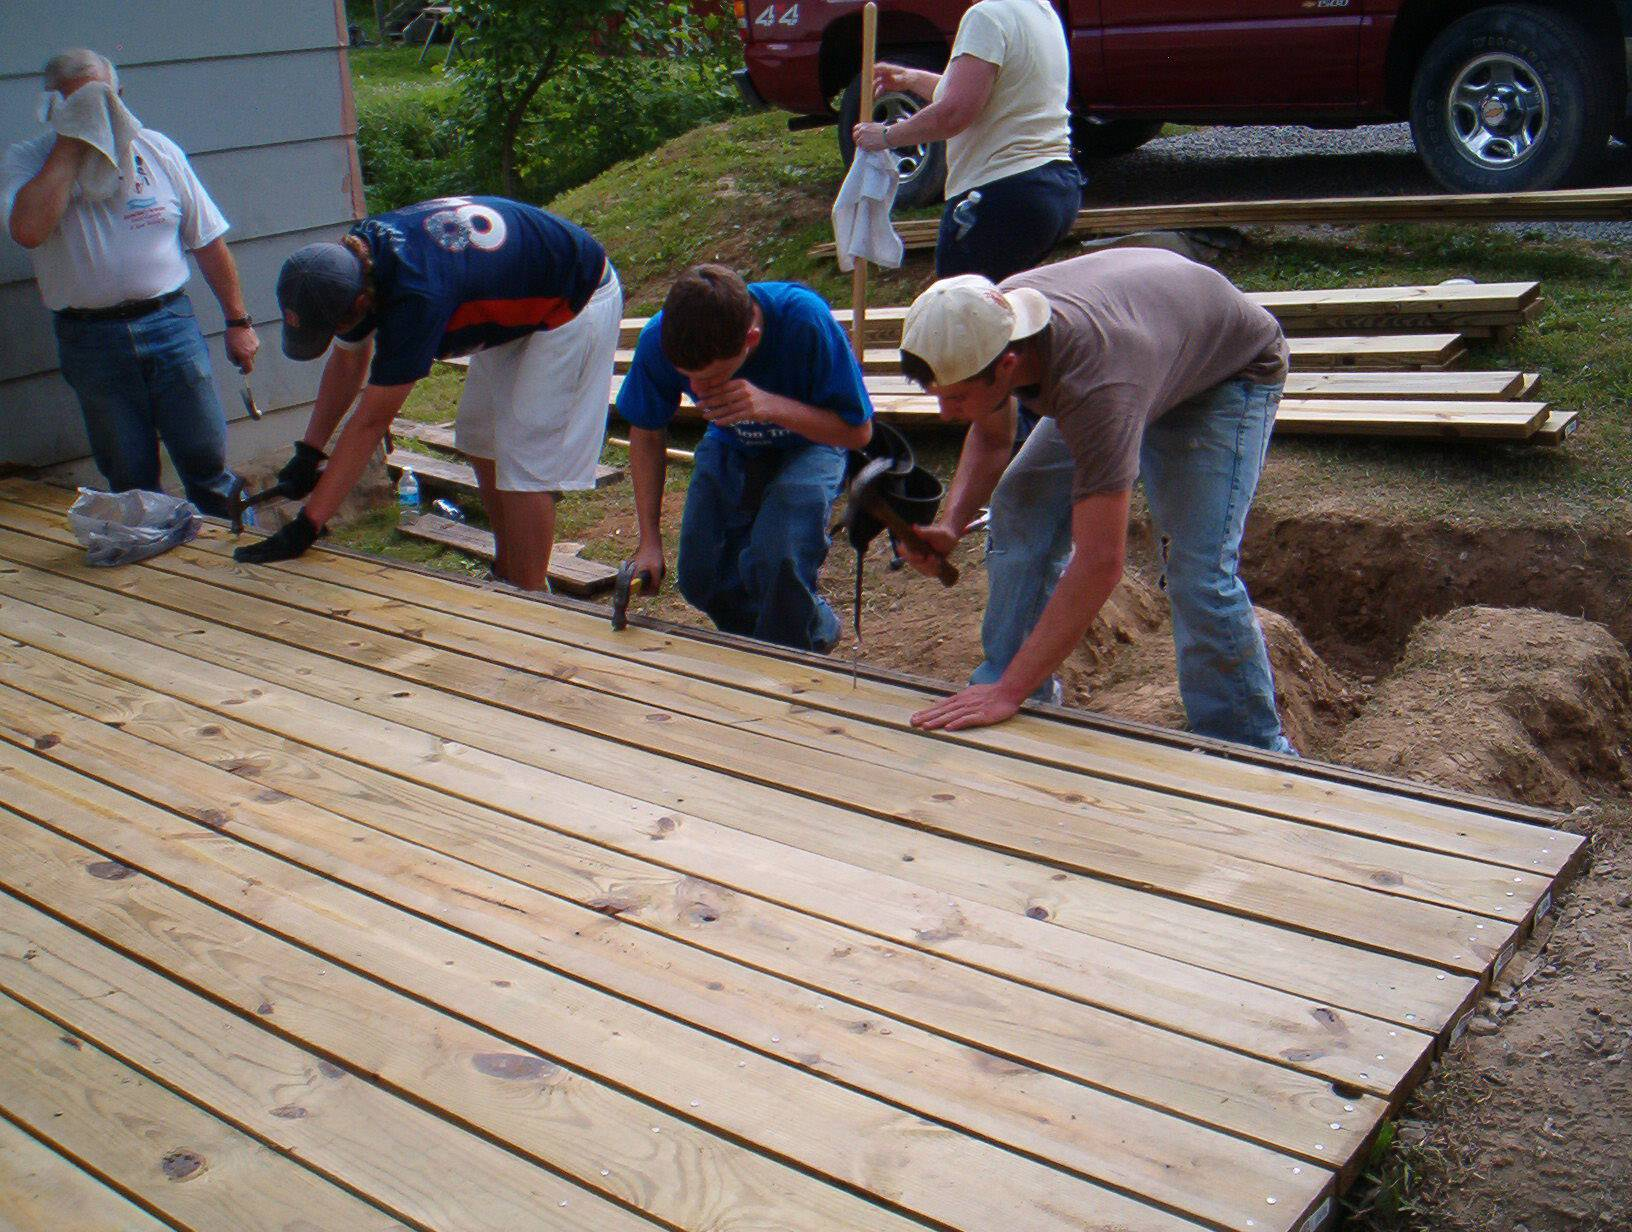 Bob Parks, from left, Andrew Schuetz, Luke Dettlo and Dillon Mugge build a deck for the family of a disabled teen last June in Prestonsburg, Kentucky. High school students from St. Charles Episcopal Church spend a few days each June repairing homes on a mission trip called Mission in the Mountains.